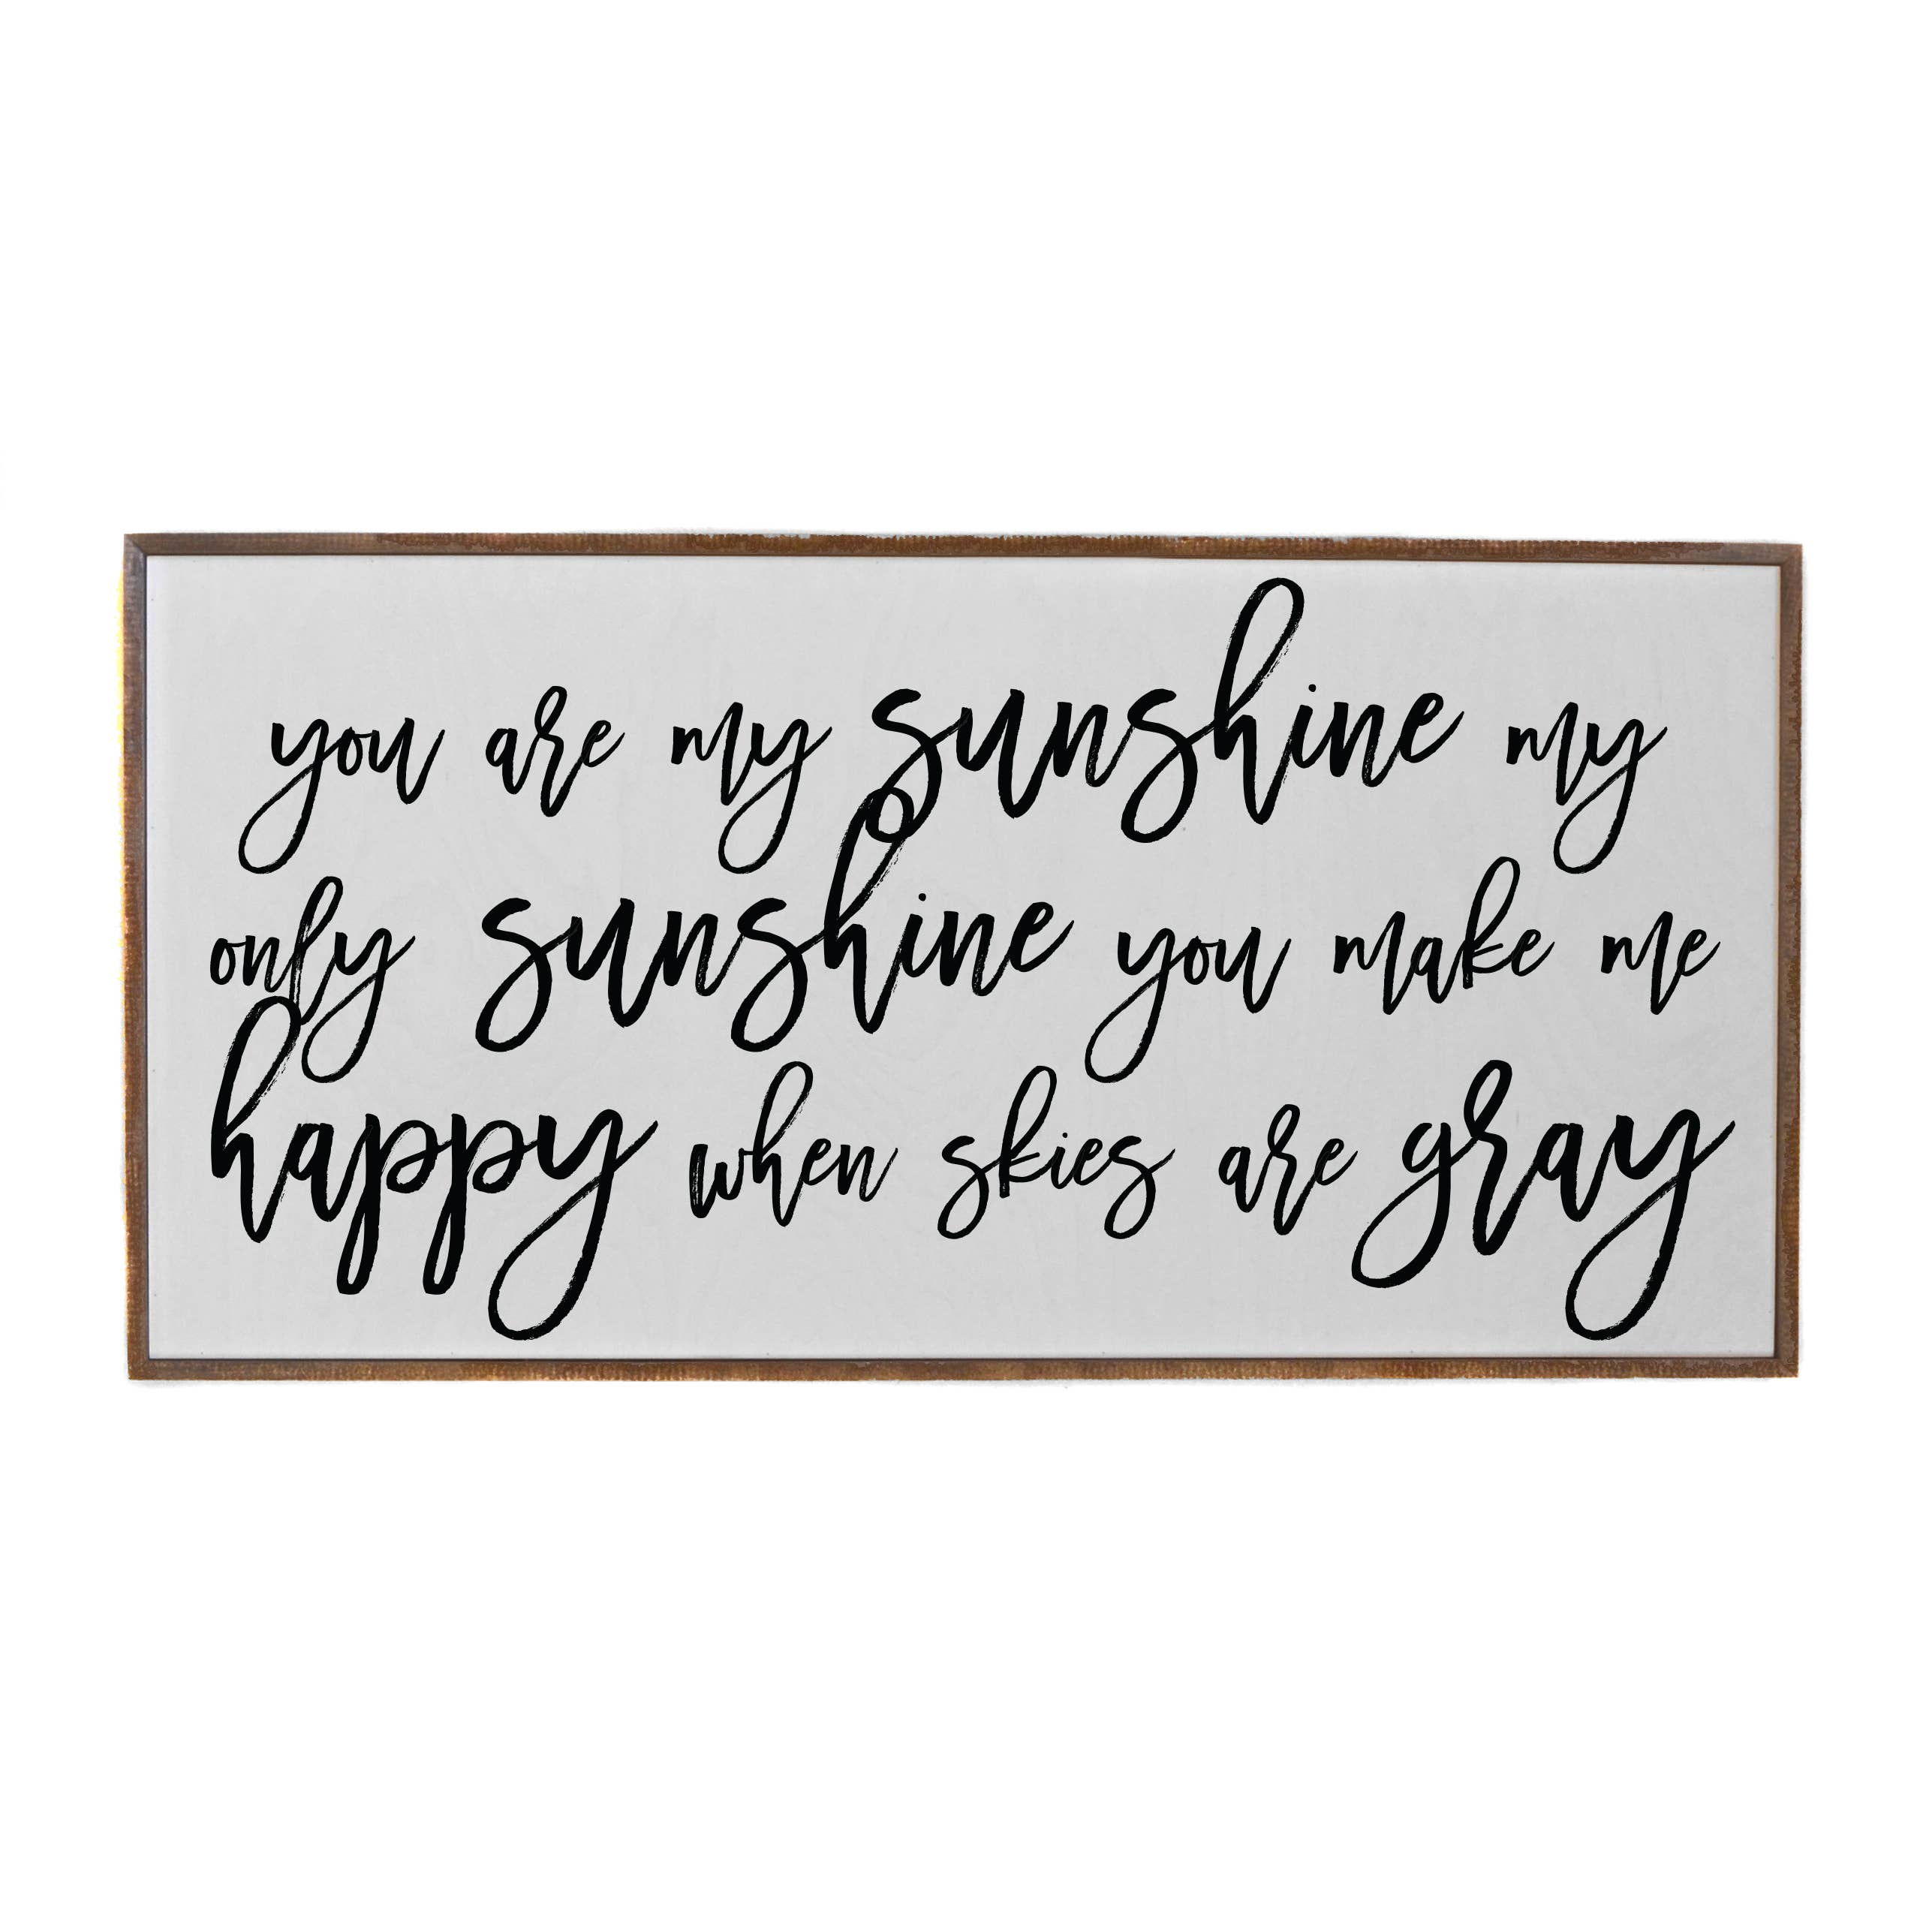 You Are My Sunshine... sign